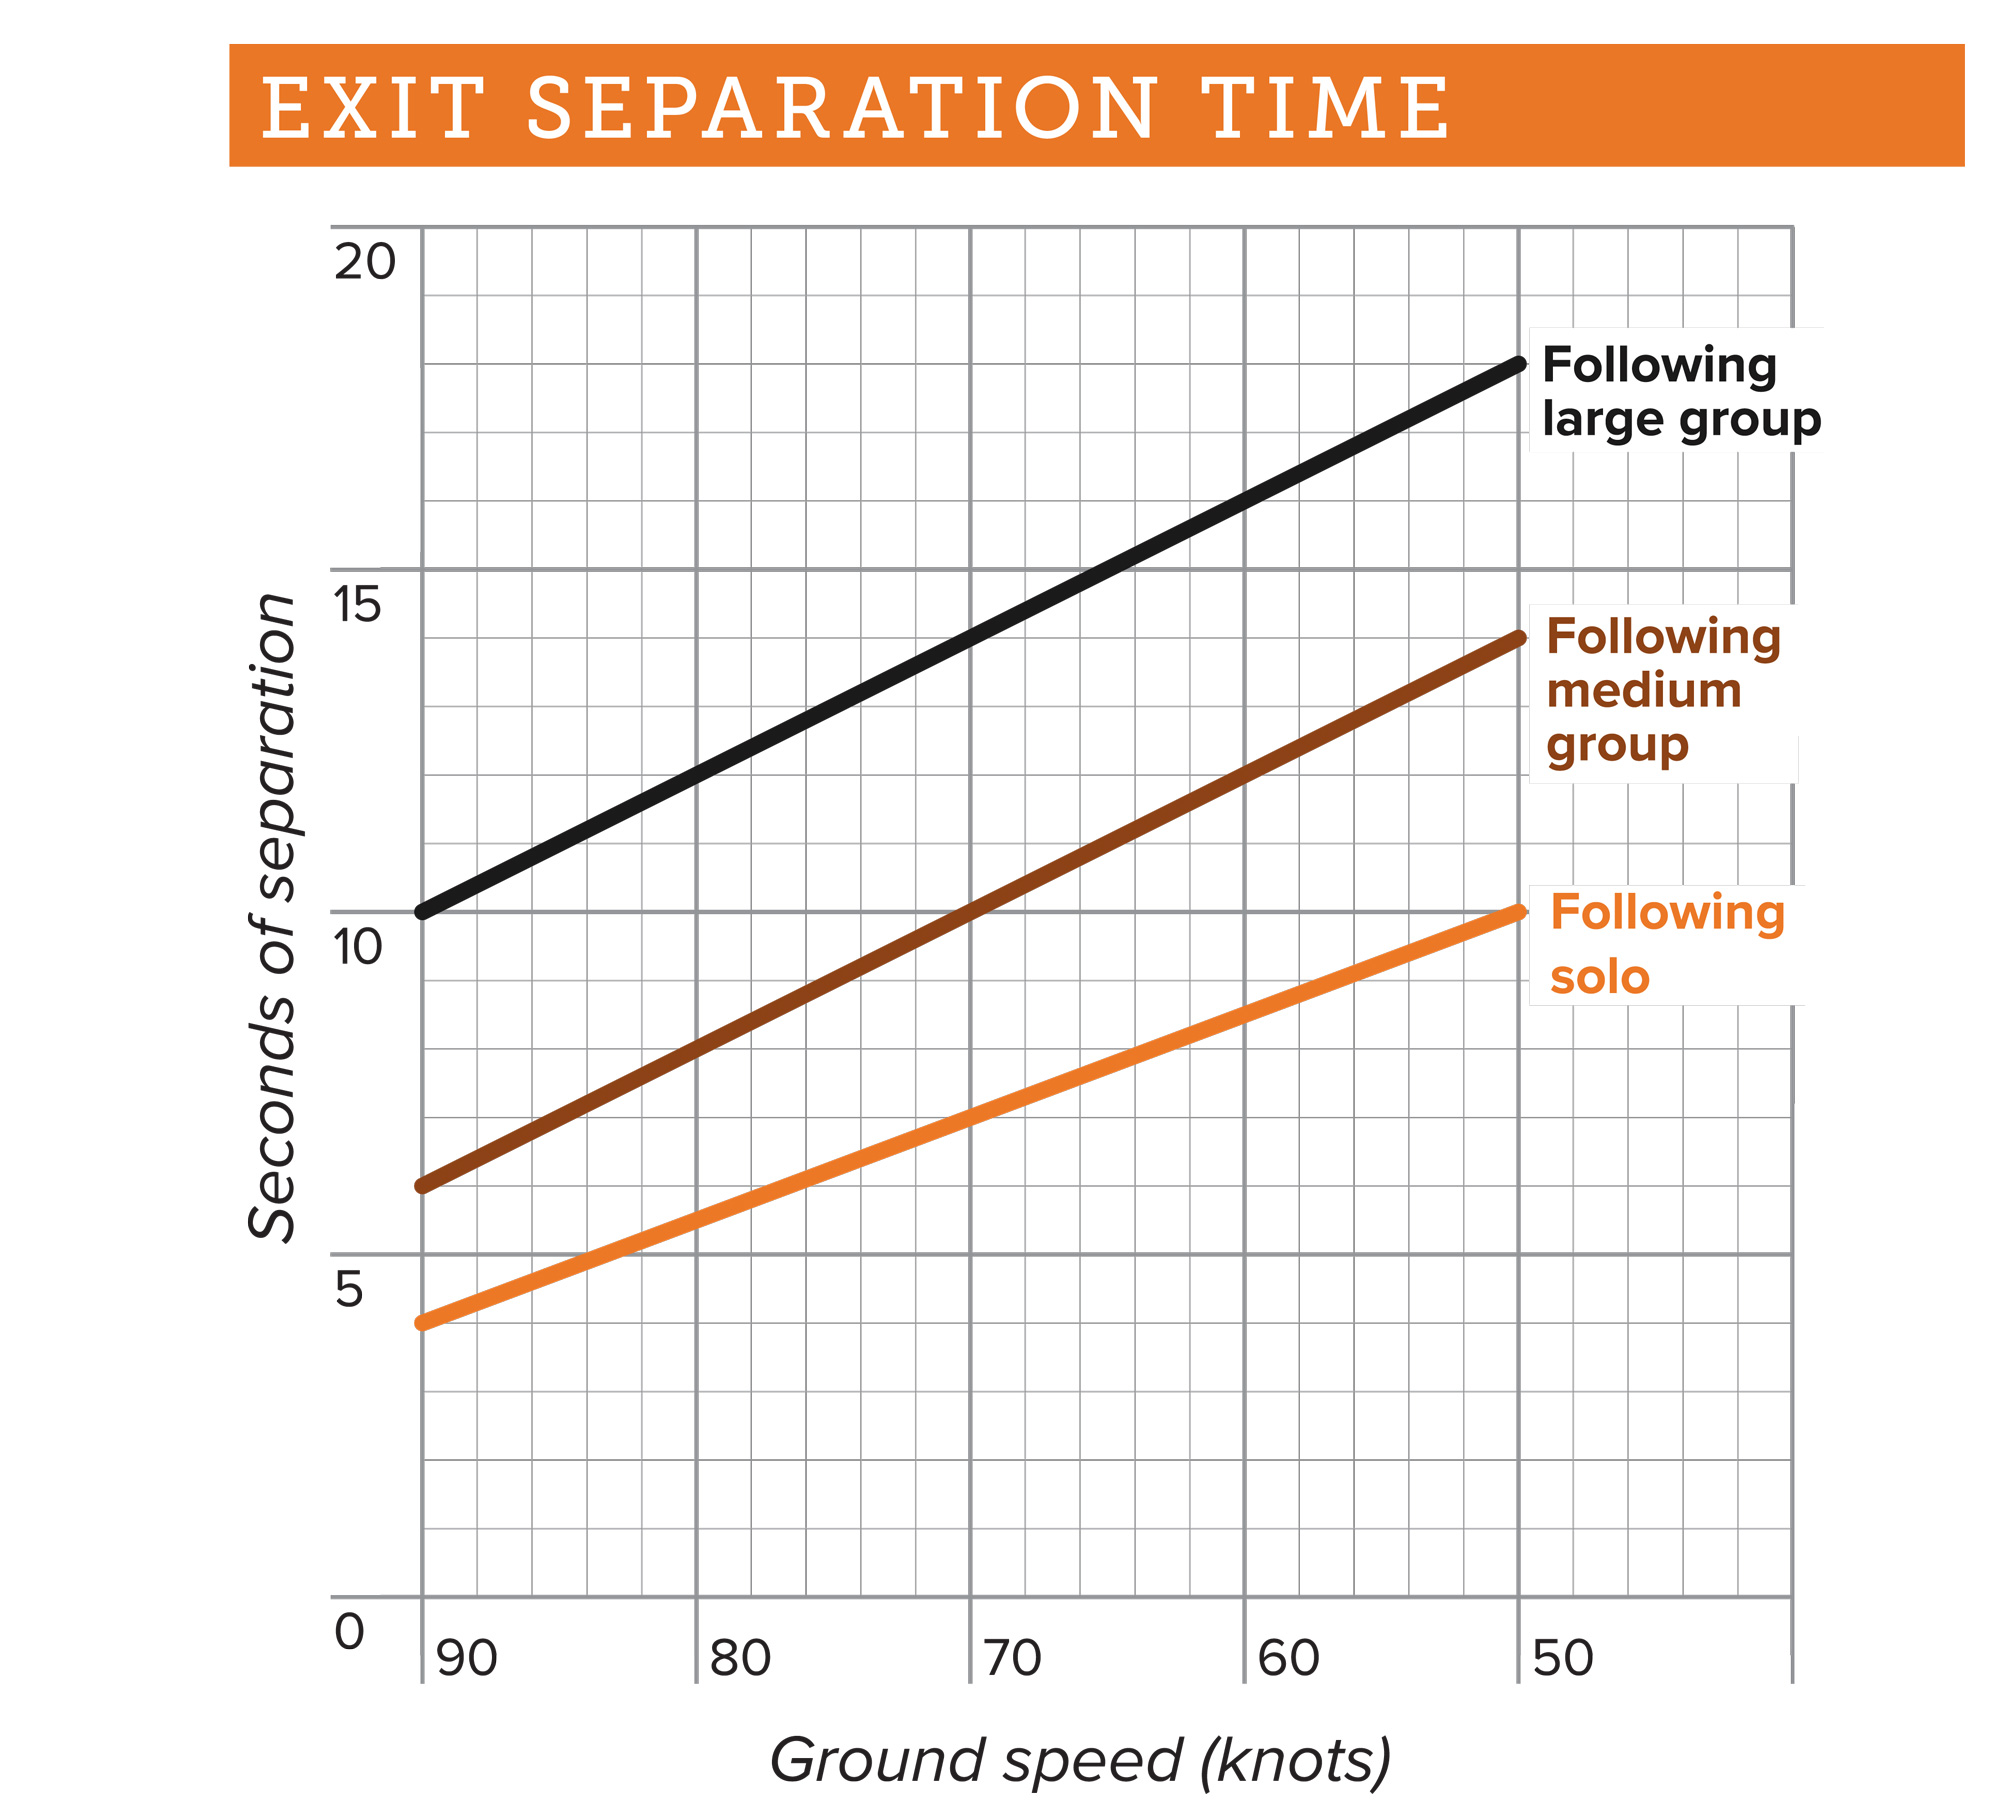 exit-separation-time